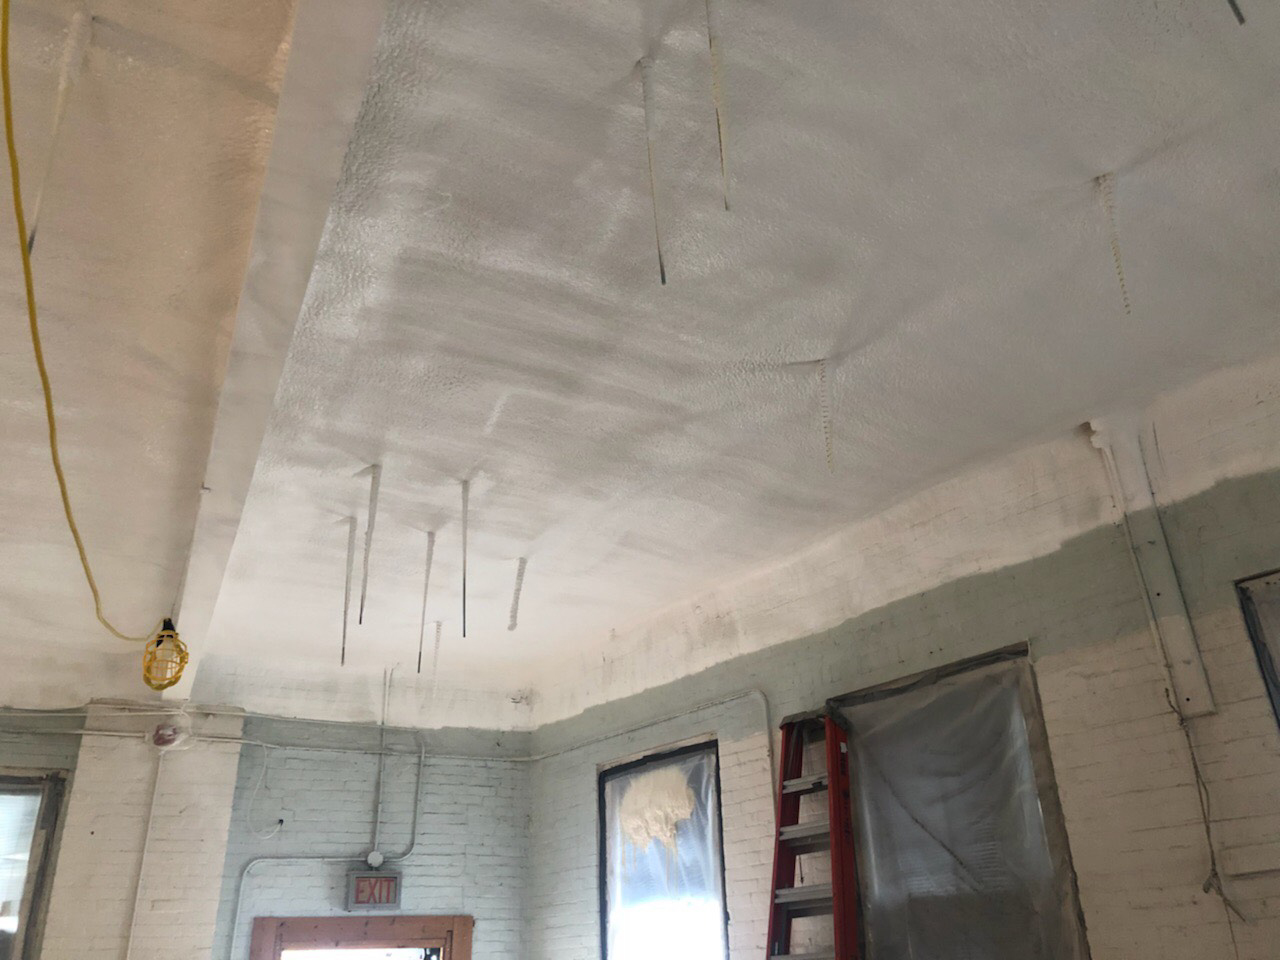 Albany, NY Spray Foam Insulation